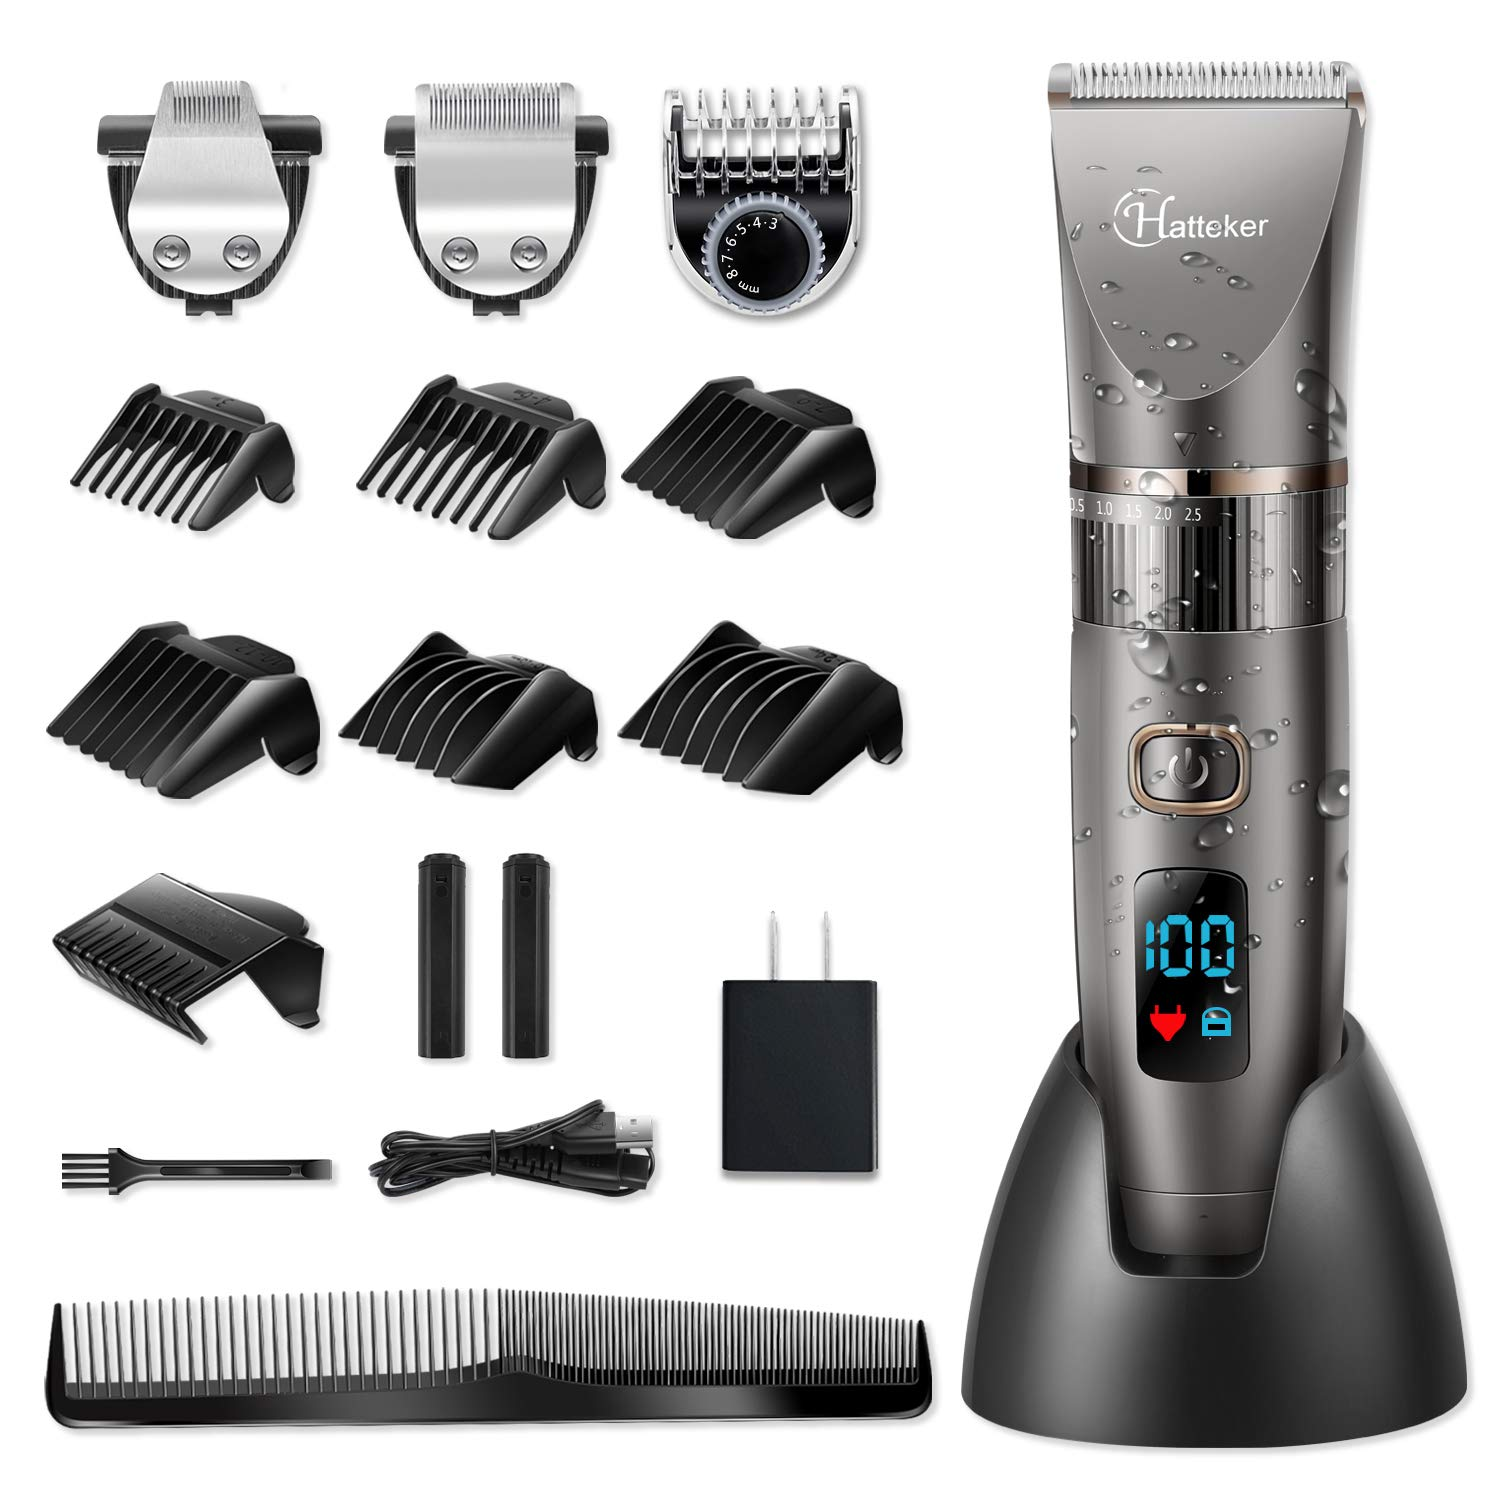 Hatteker Mens Cordless Beard and Hair Clippers